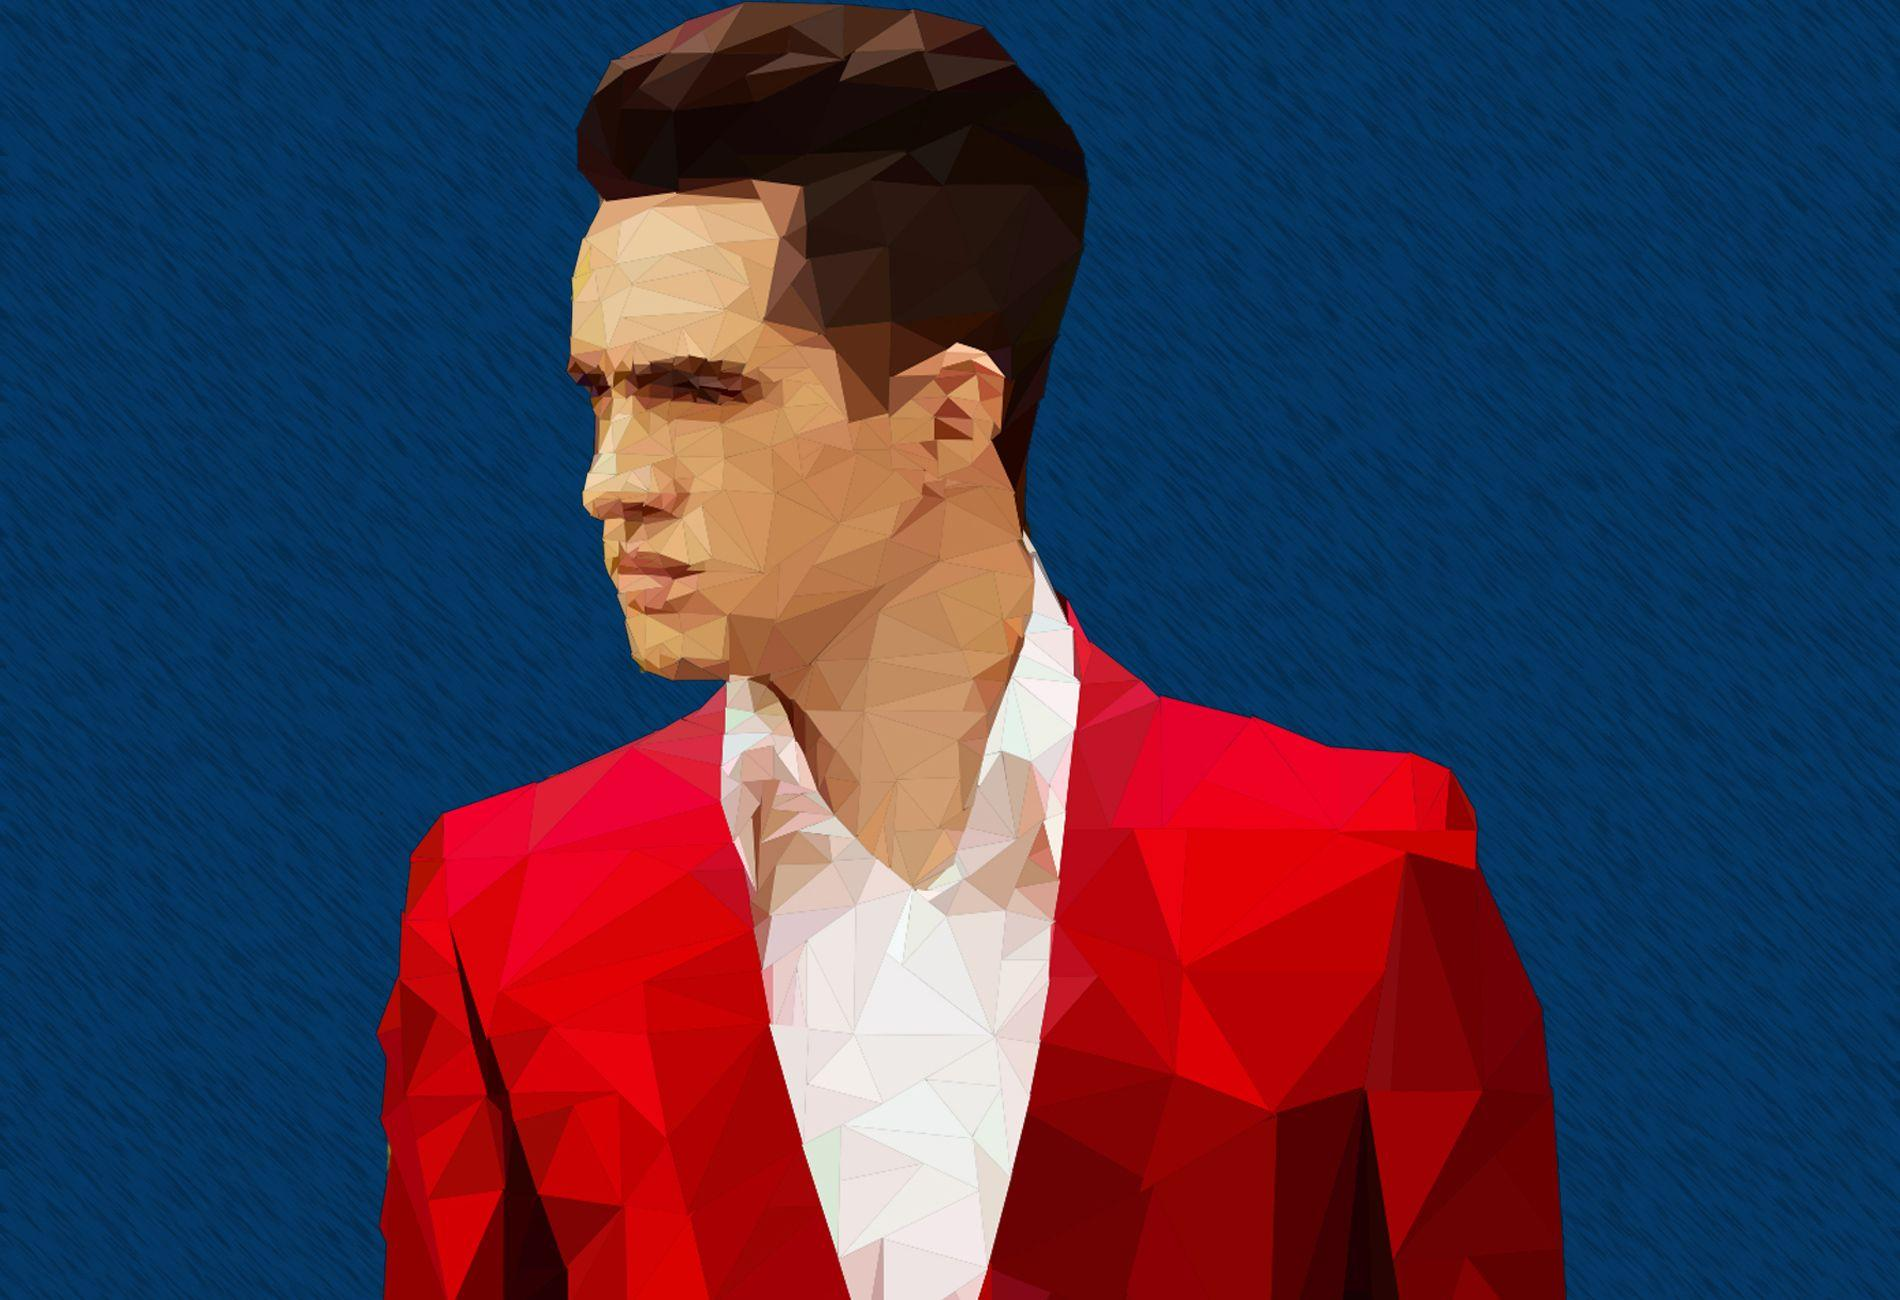 Panic At The Disco Wallpaper Hd Brendon Urie Wallpapers Wallpaper Cave